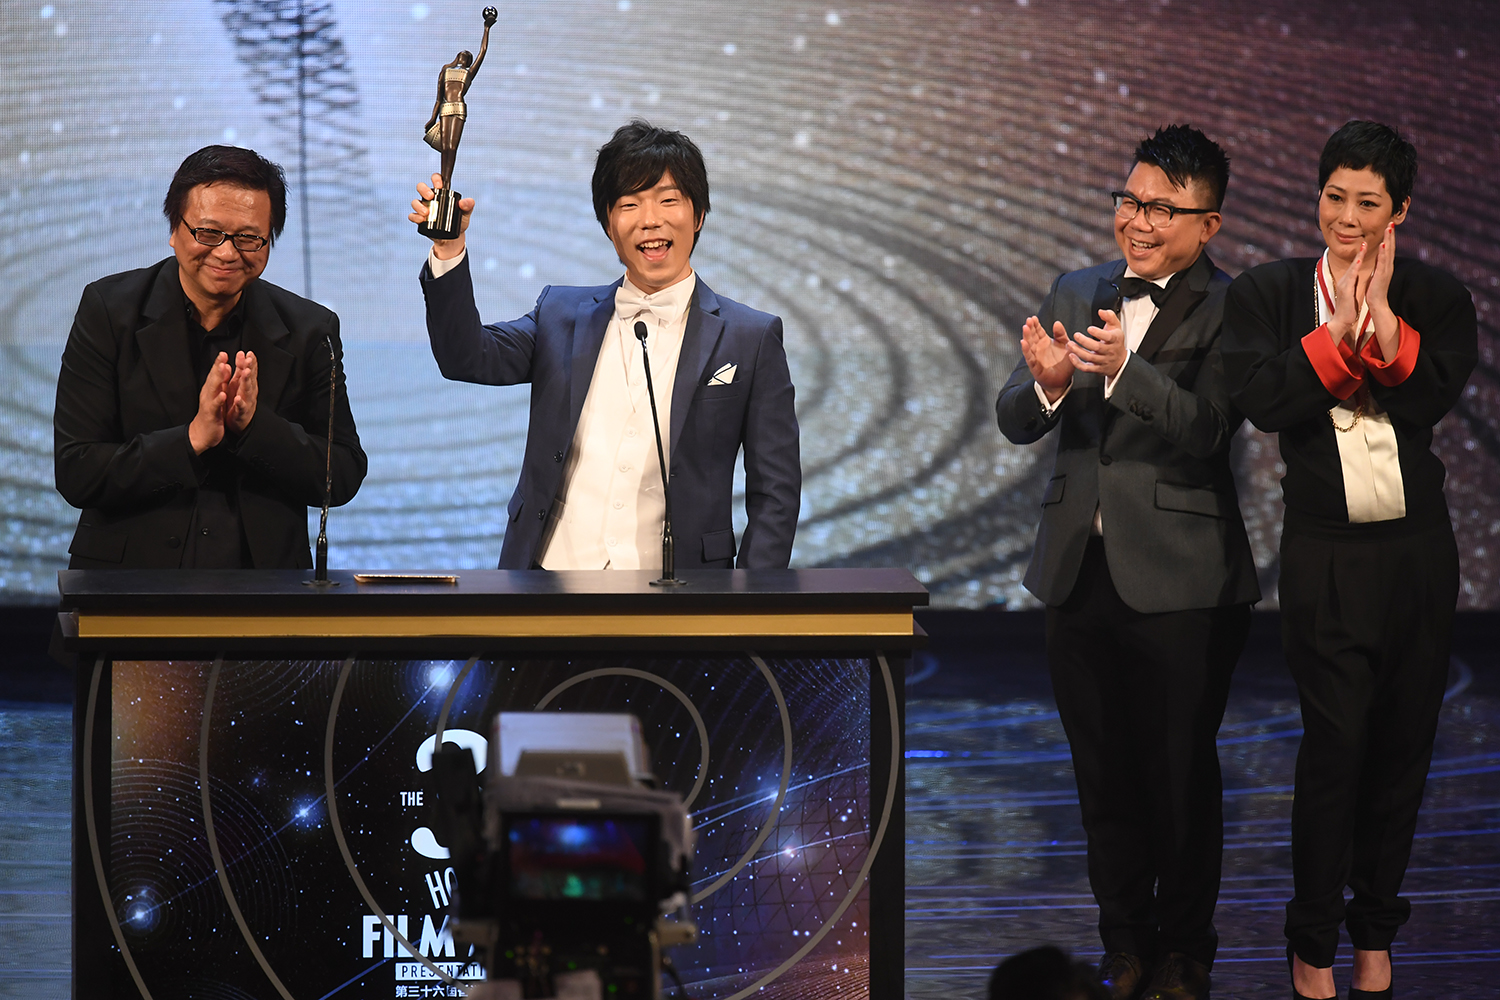 Winner of Hong Kong Film Awards